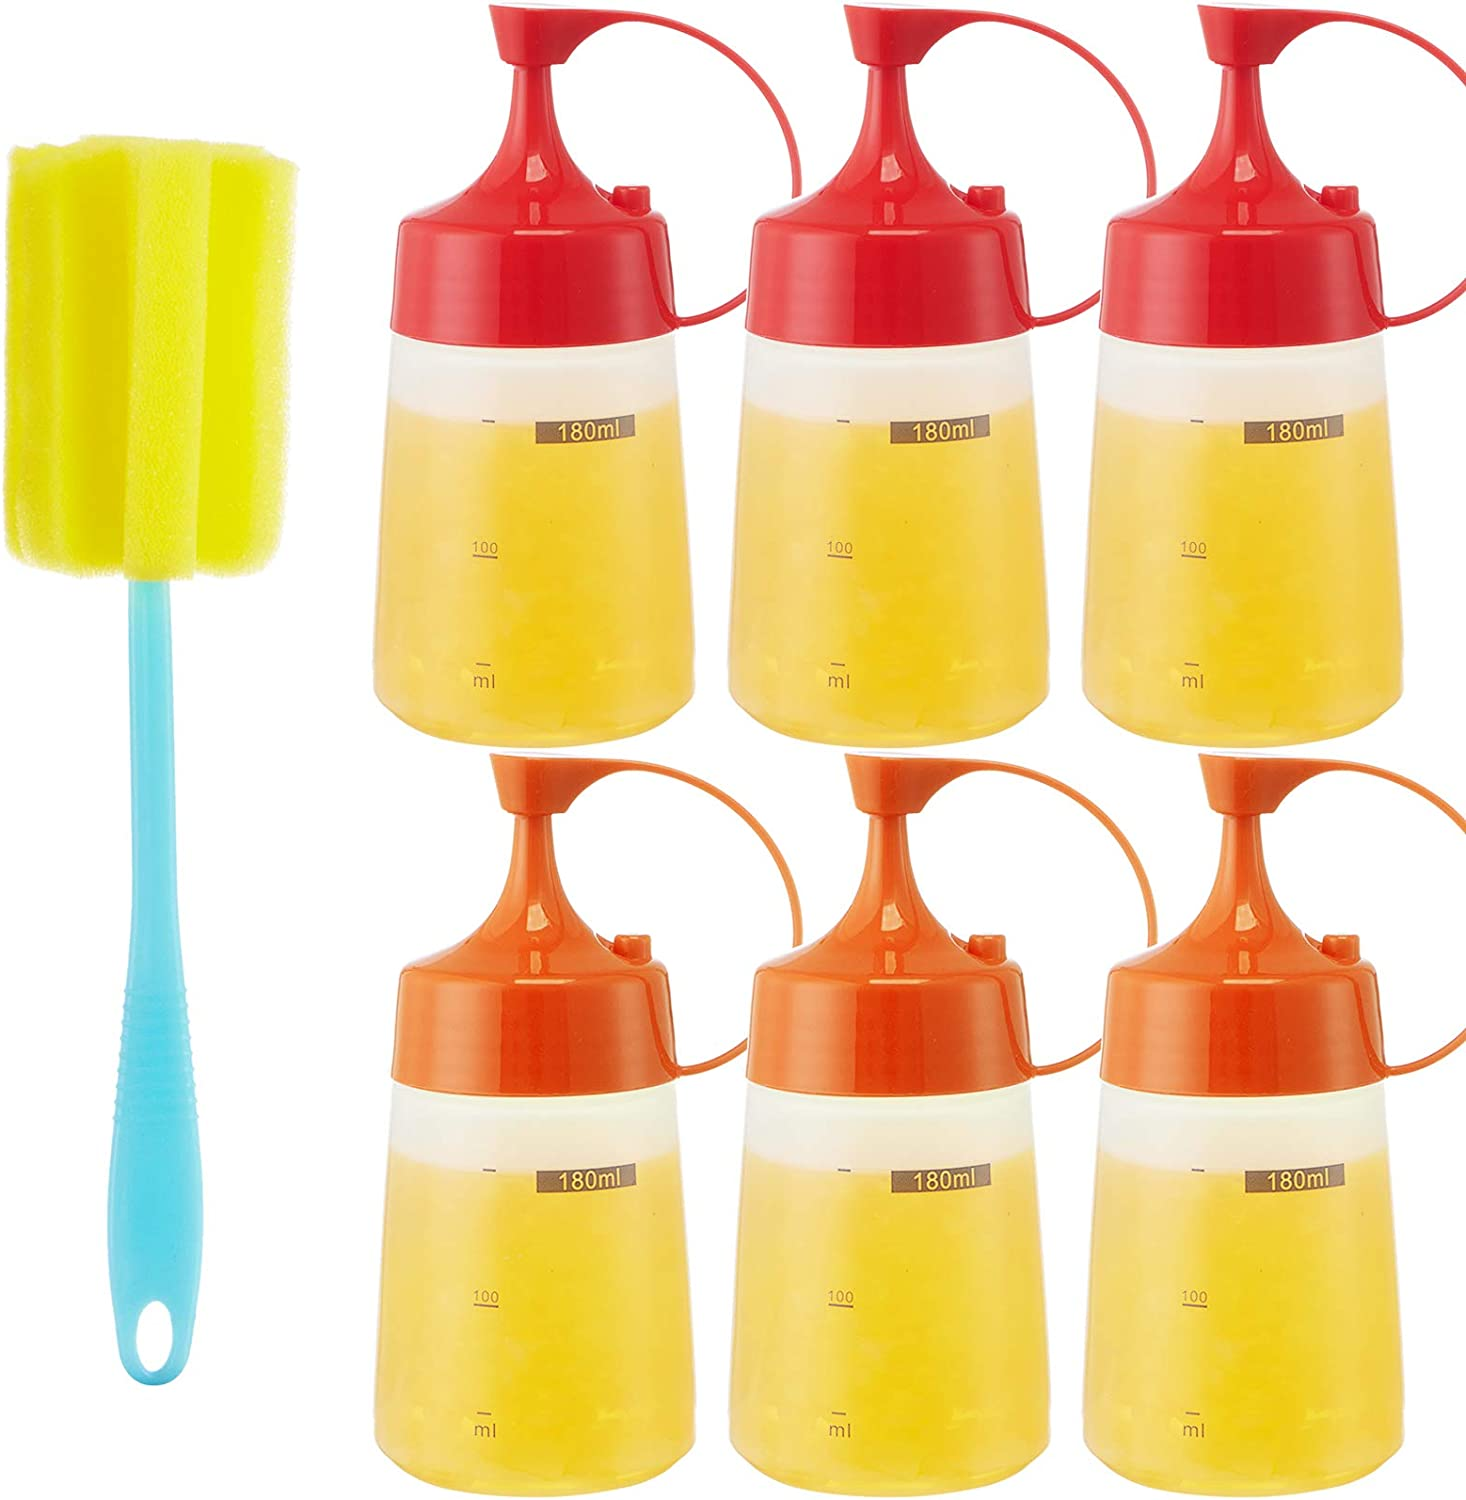 Condiment Squeeze Bottle Sauce Squeeze Squirt Bottle for Kitchen Plastic Syrup Salad Dressing Container Food Dispenser for Oil Ketchup Griddle Hot Sauce Catsup Pancake(small mouth) (6, 6 OZ)